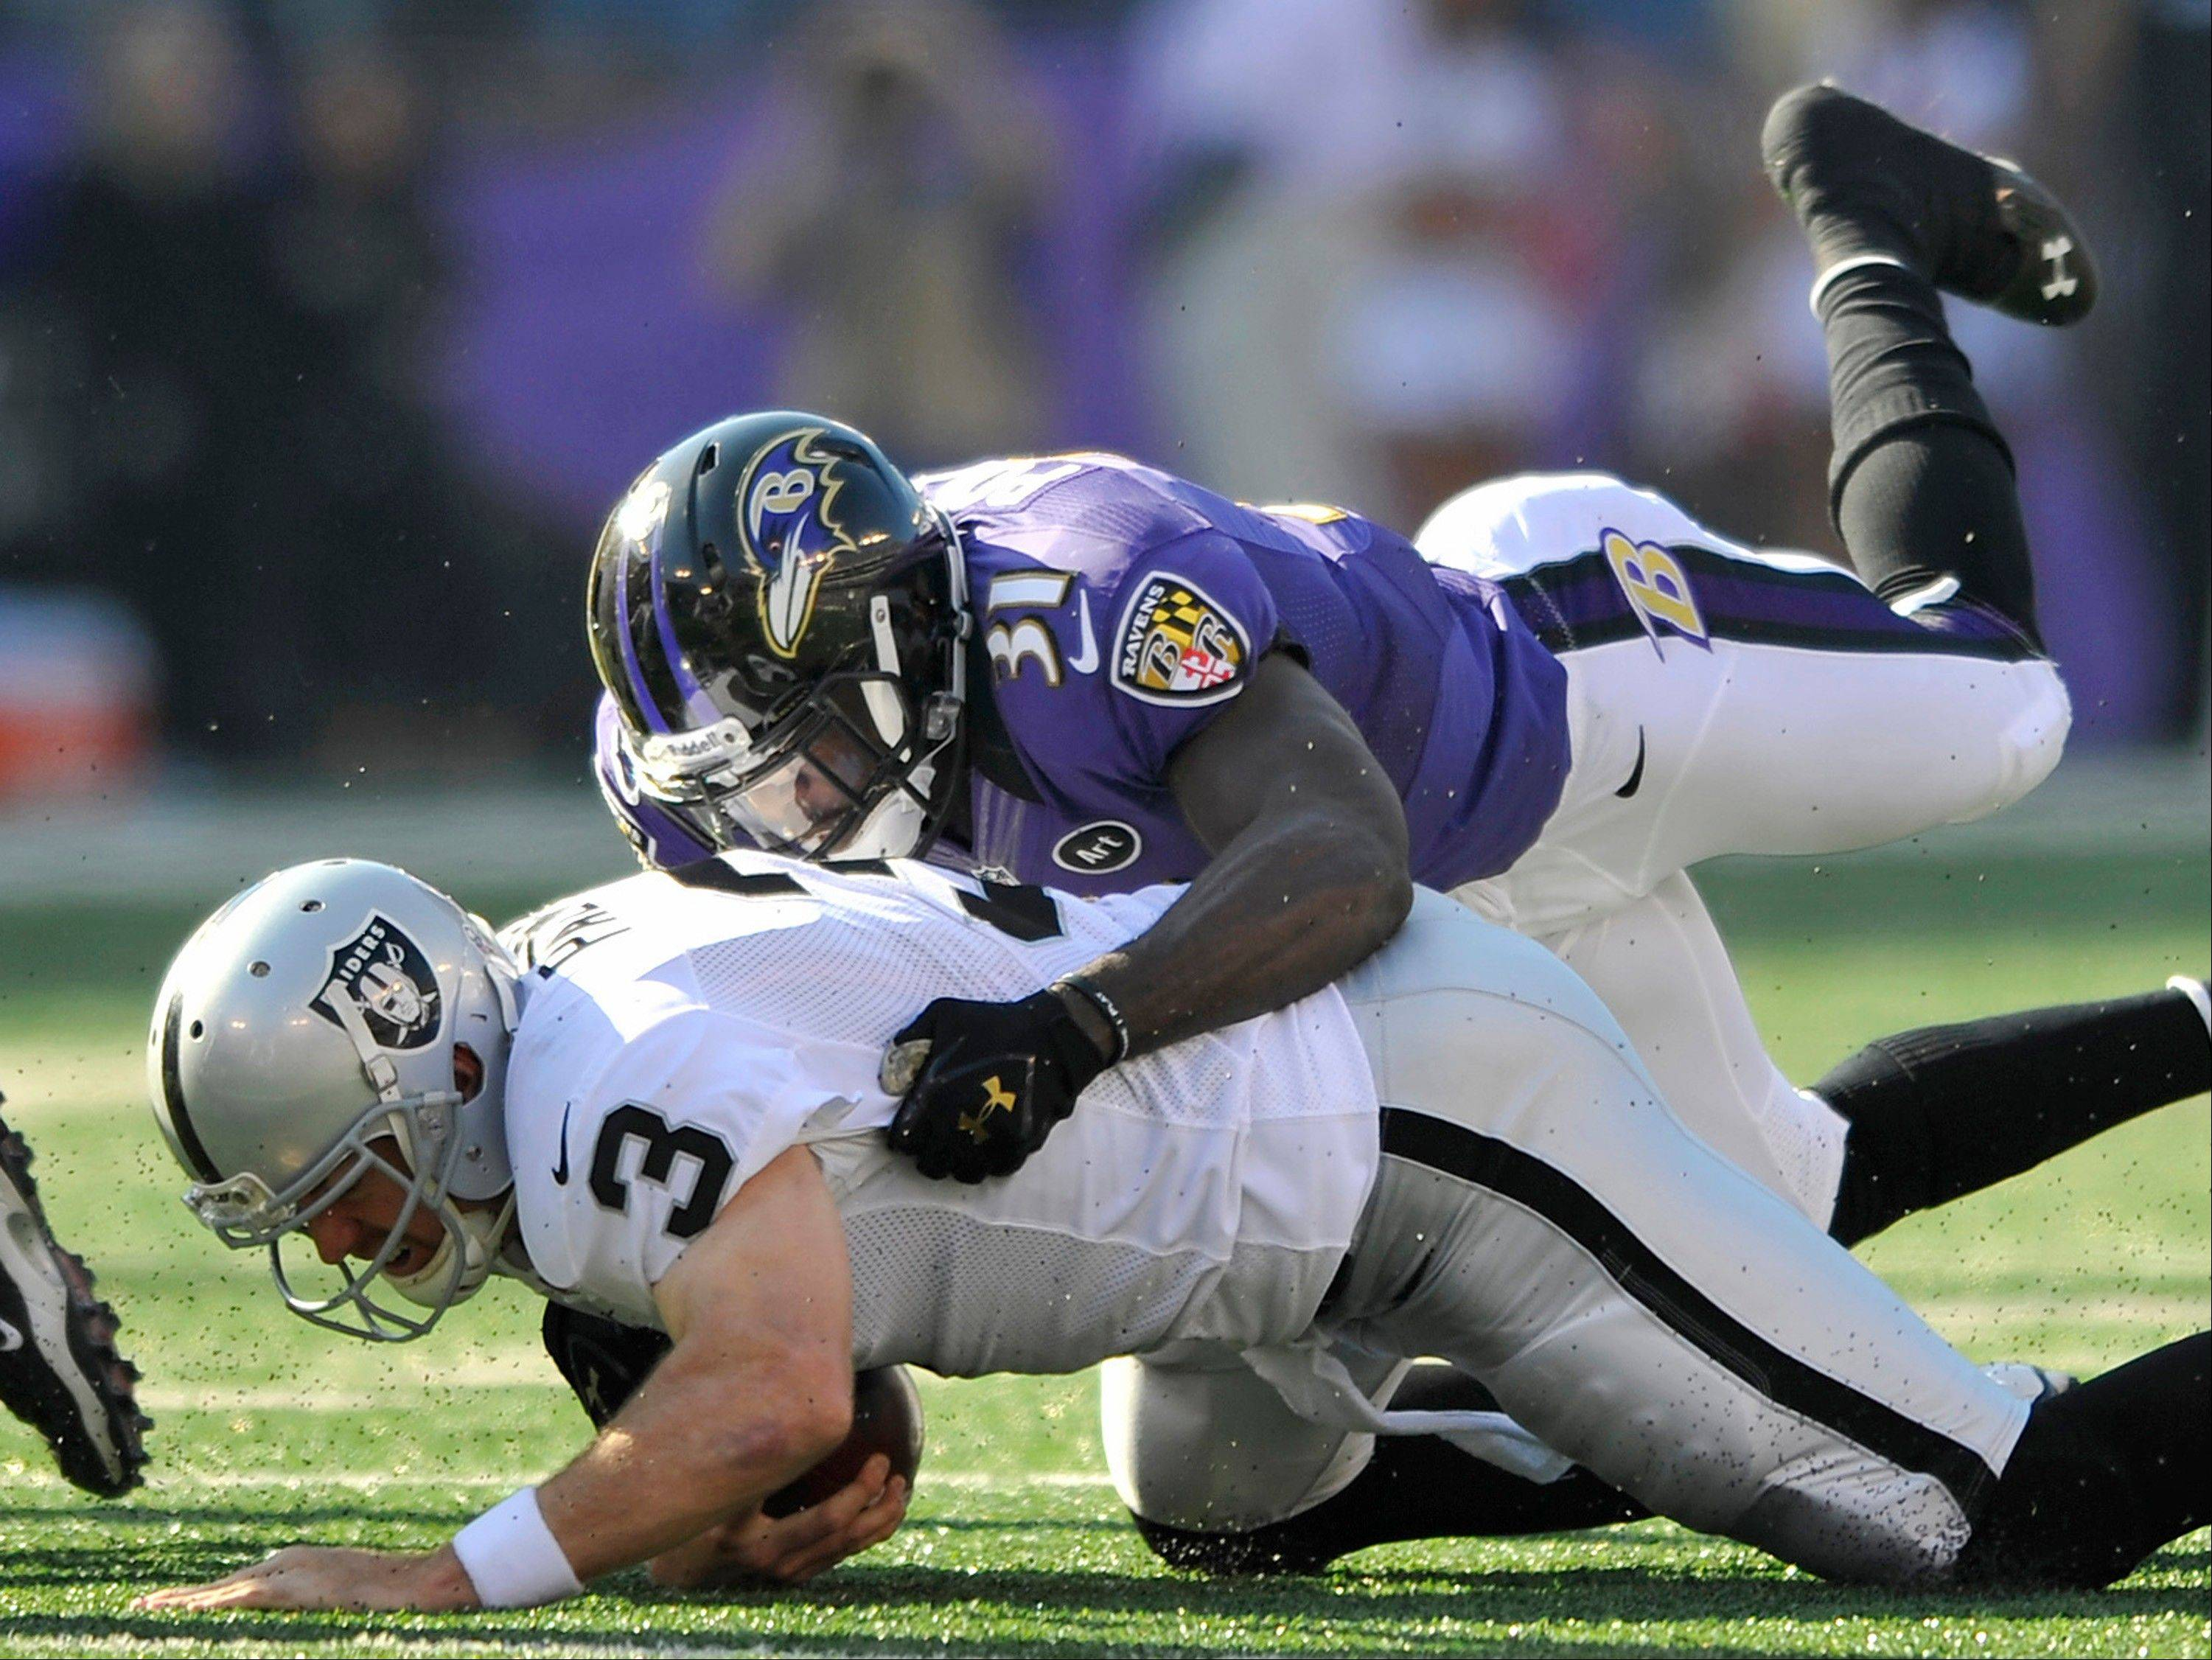 Oakland Raiders quarterback Carson Palmer (3) is sacked by Baltimore Ravens strong safety Bernard Pollard in the first half of an NFL football game in Baltimore, Sunday, Nov. 11, 2012.